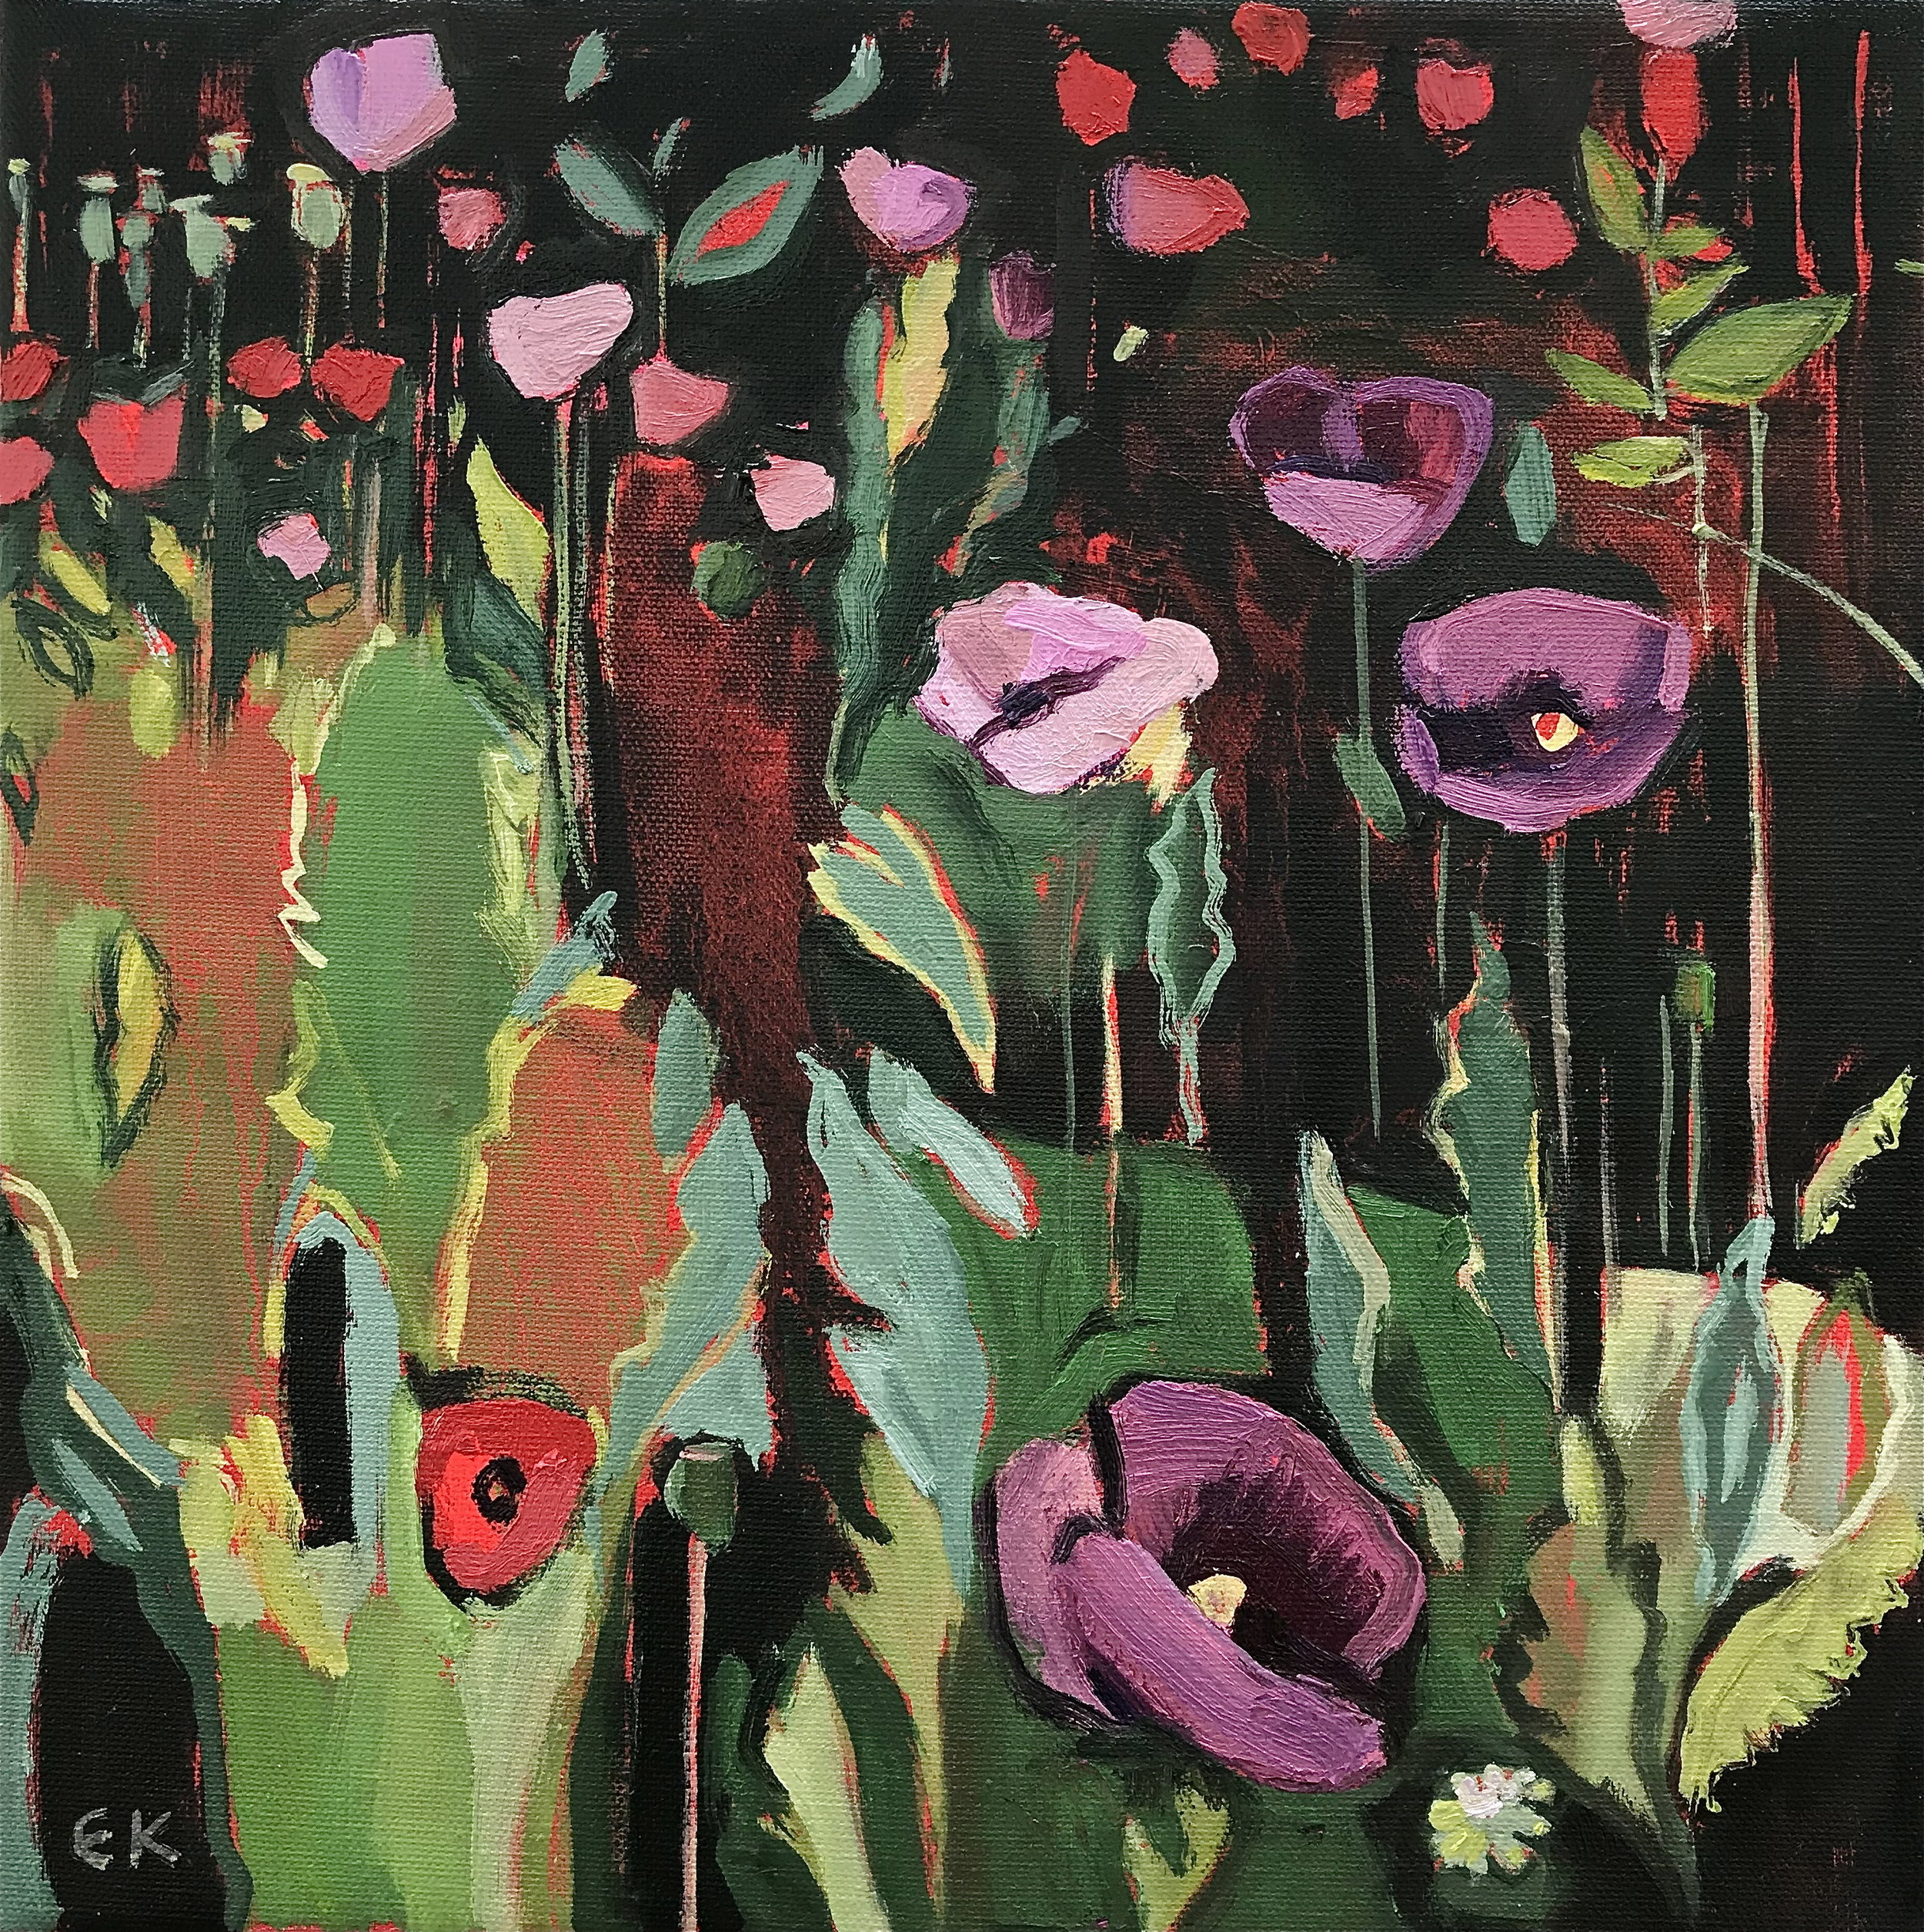 Diptych: Opium Poppies in the Oxford Botanic Gardens - left panel